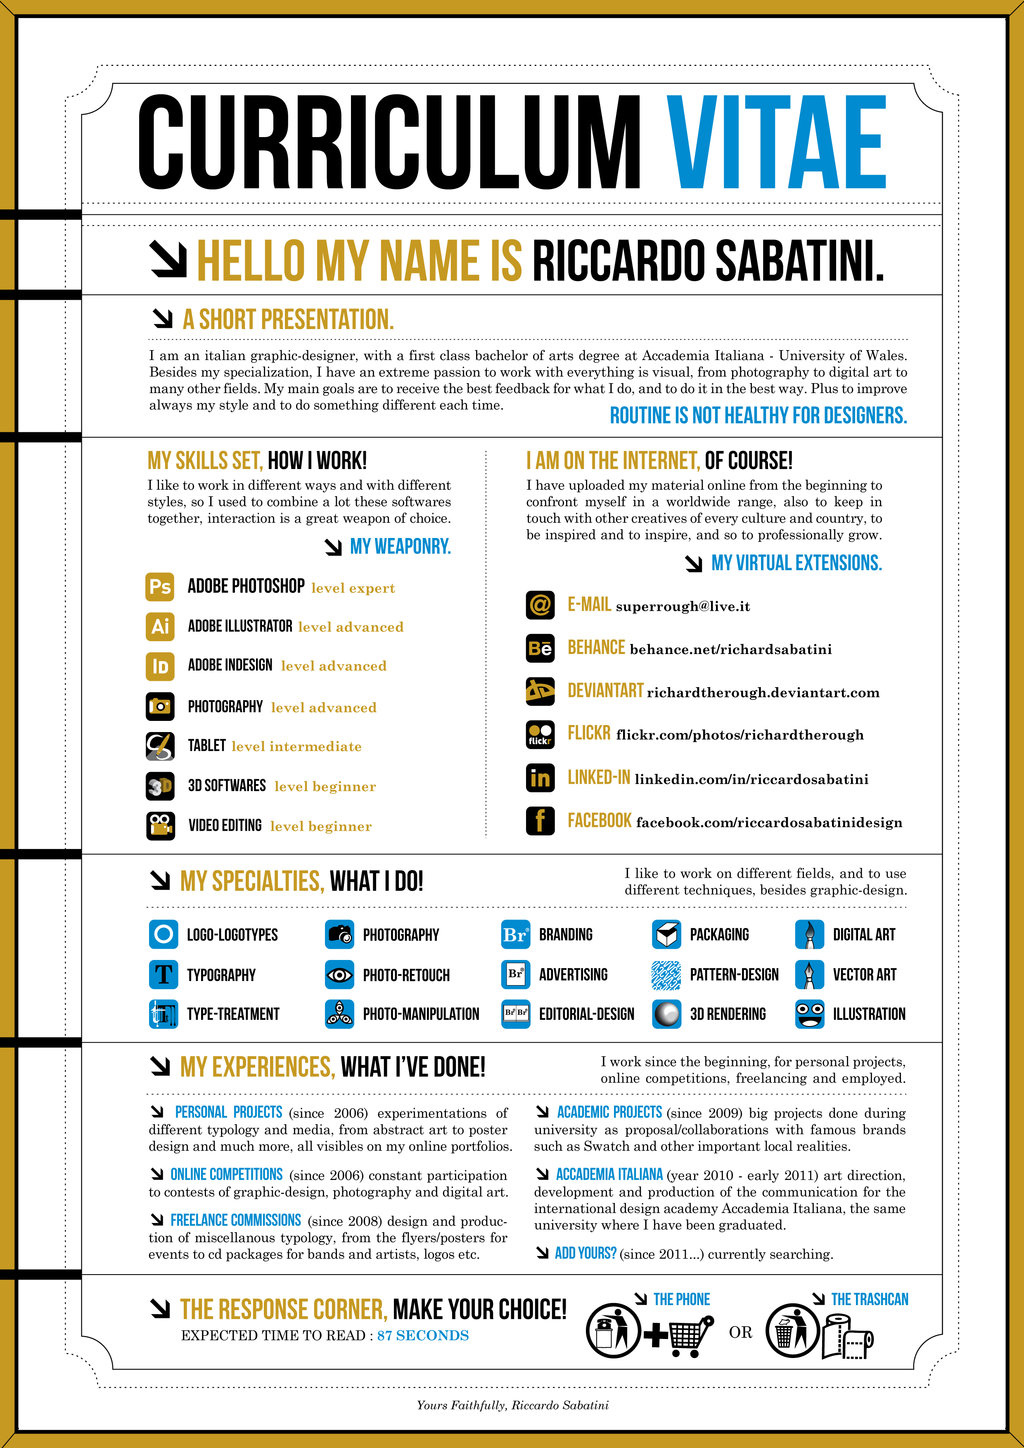 Resume Infographic How To Make An Infographic Resume